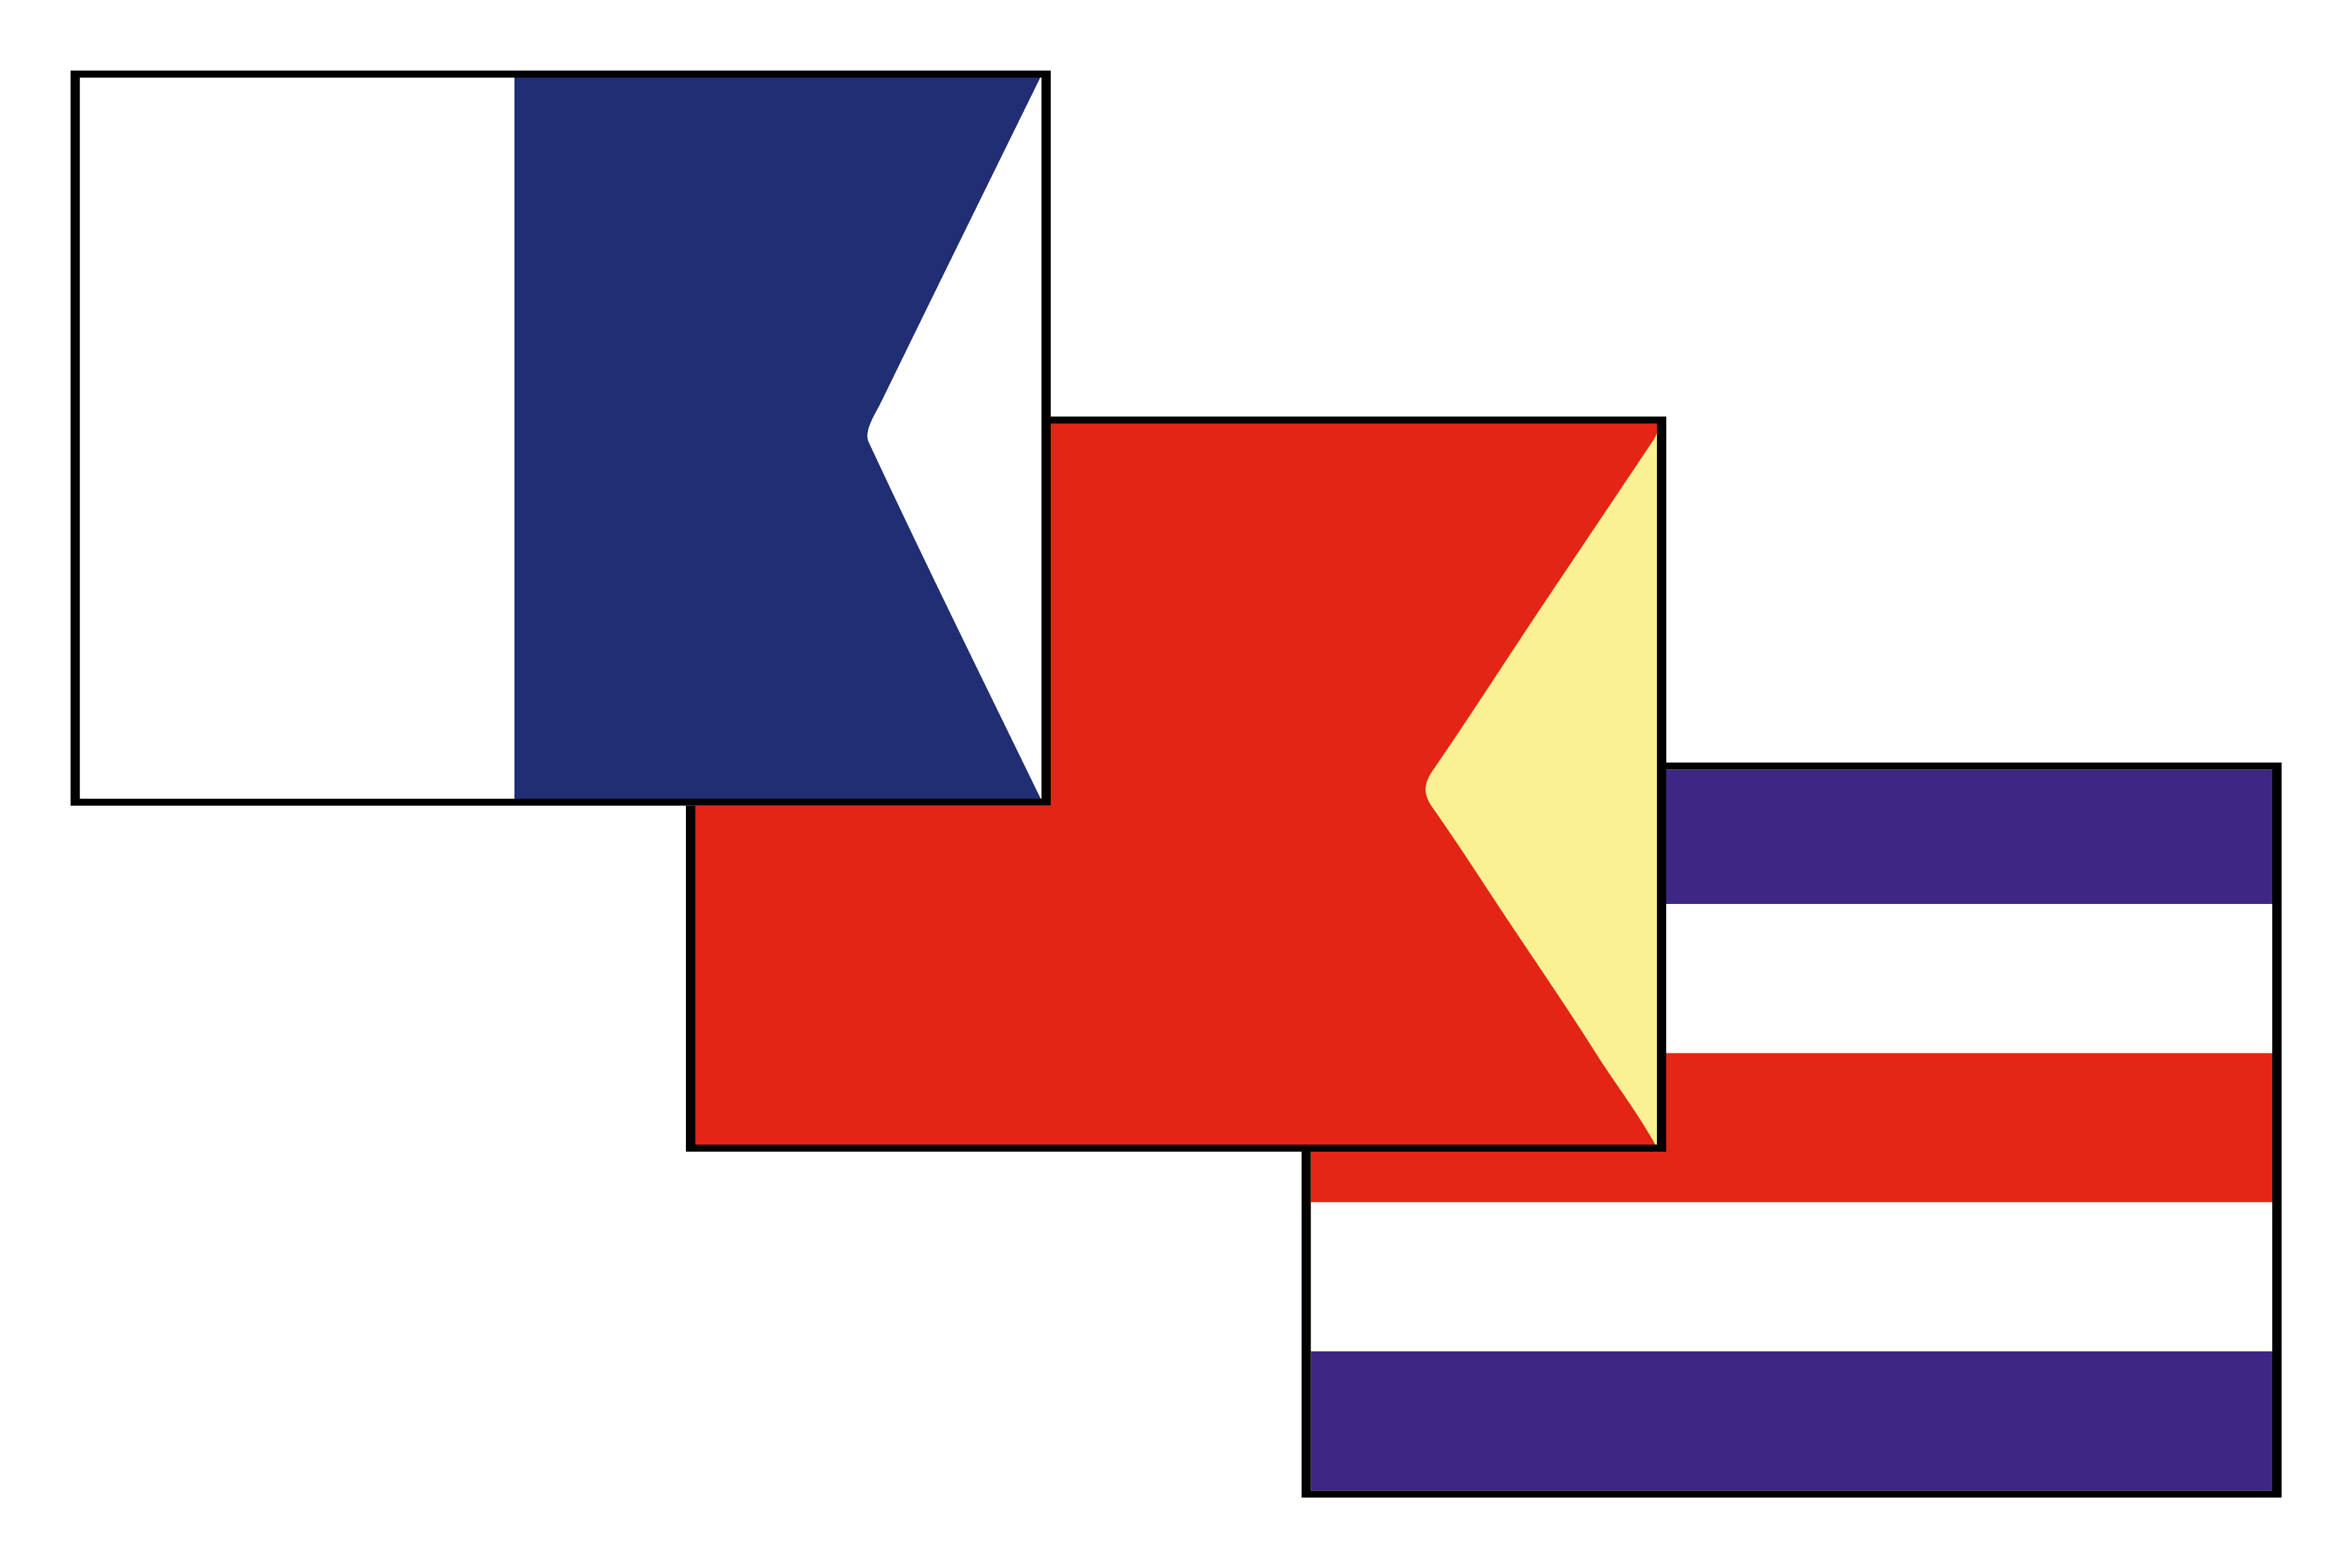 Signal Flags Image